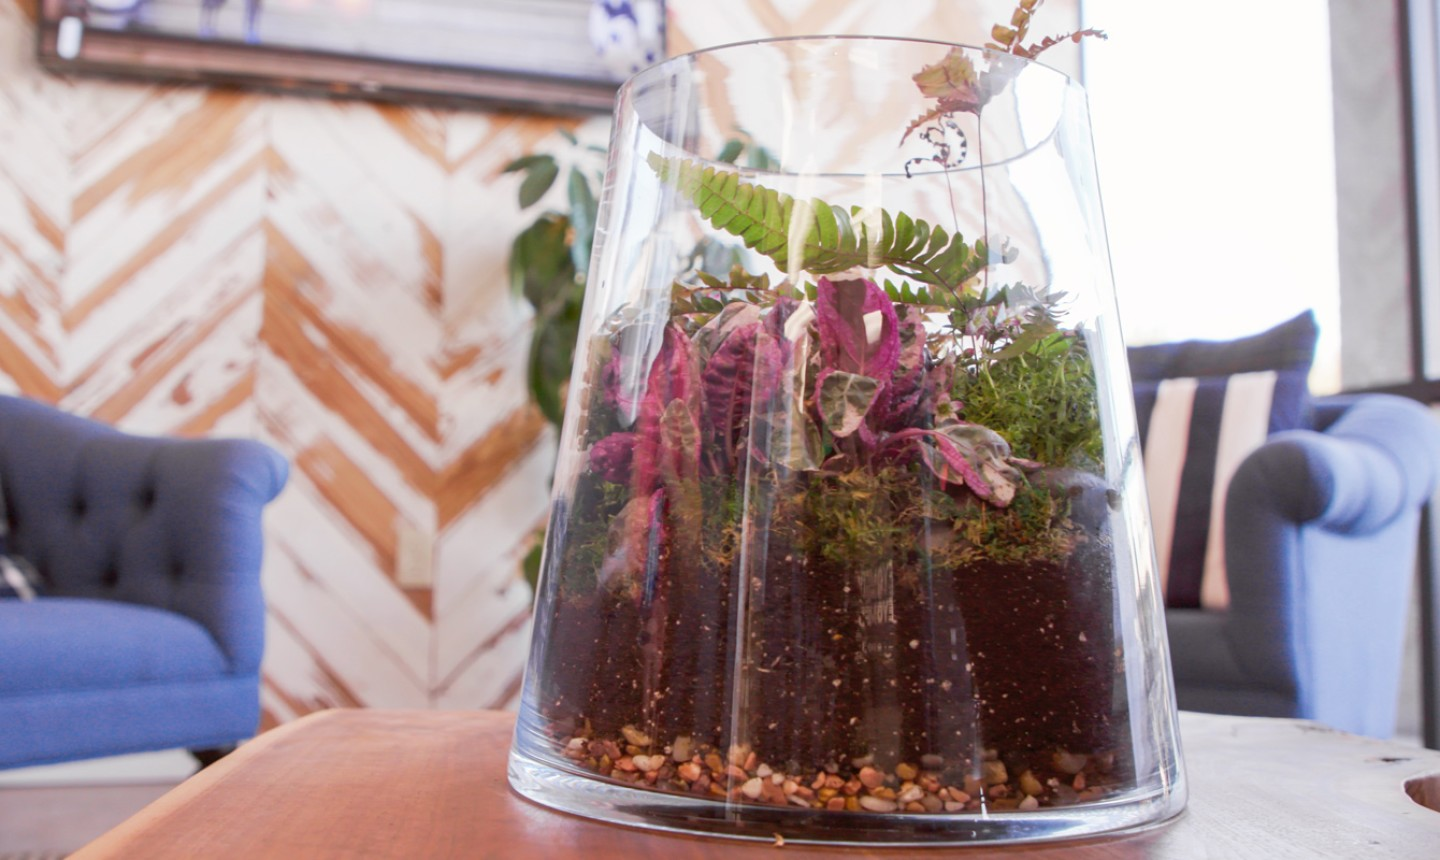 How To Make A Diy Terrarium Everything You Need To Know